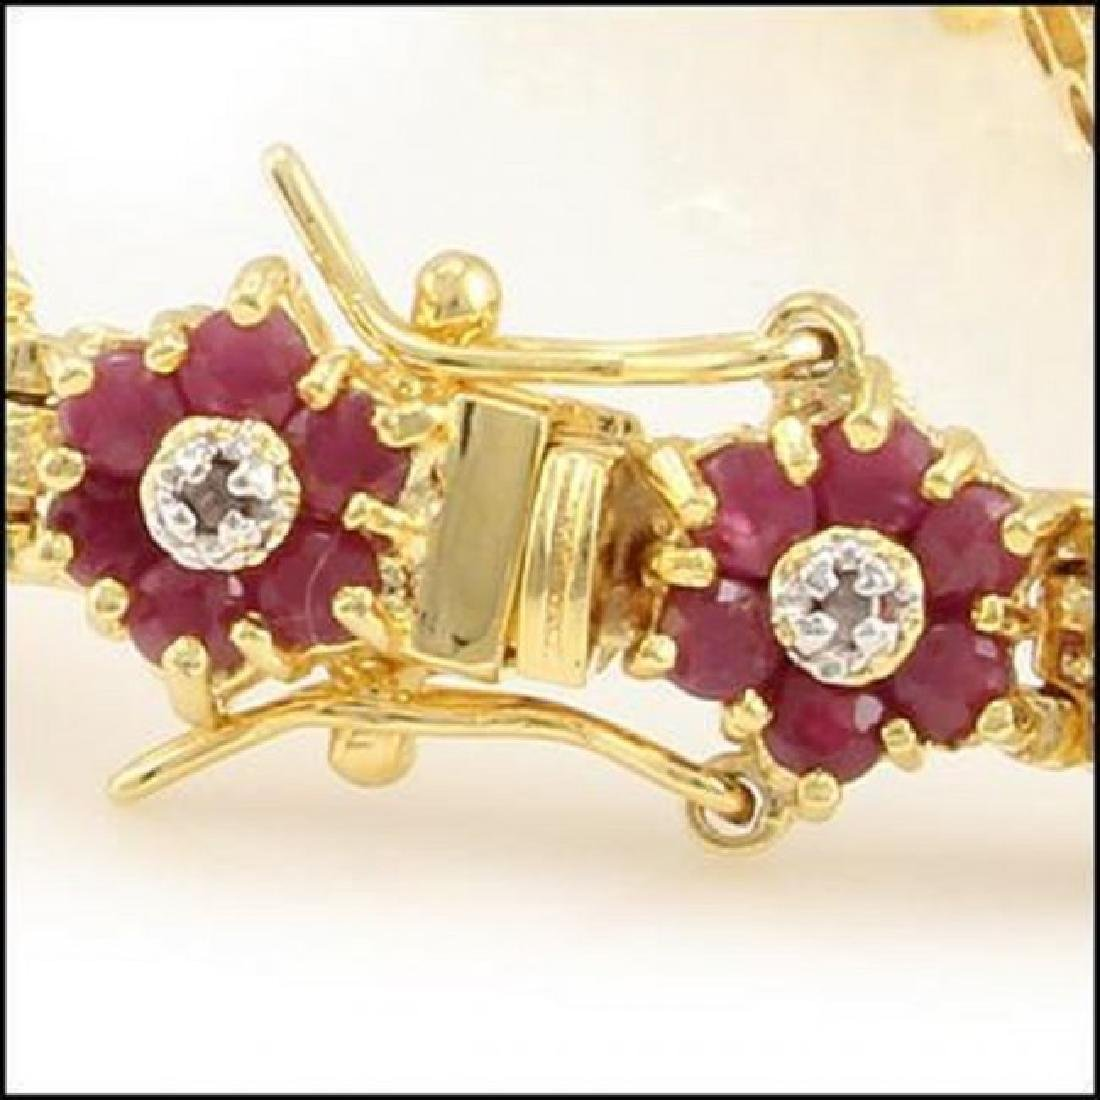 16.74 Ct Ruby & Diamond Designer Bracelet - 2